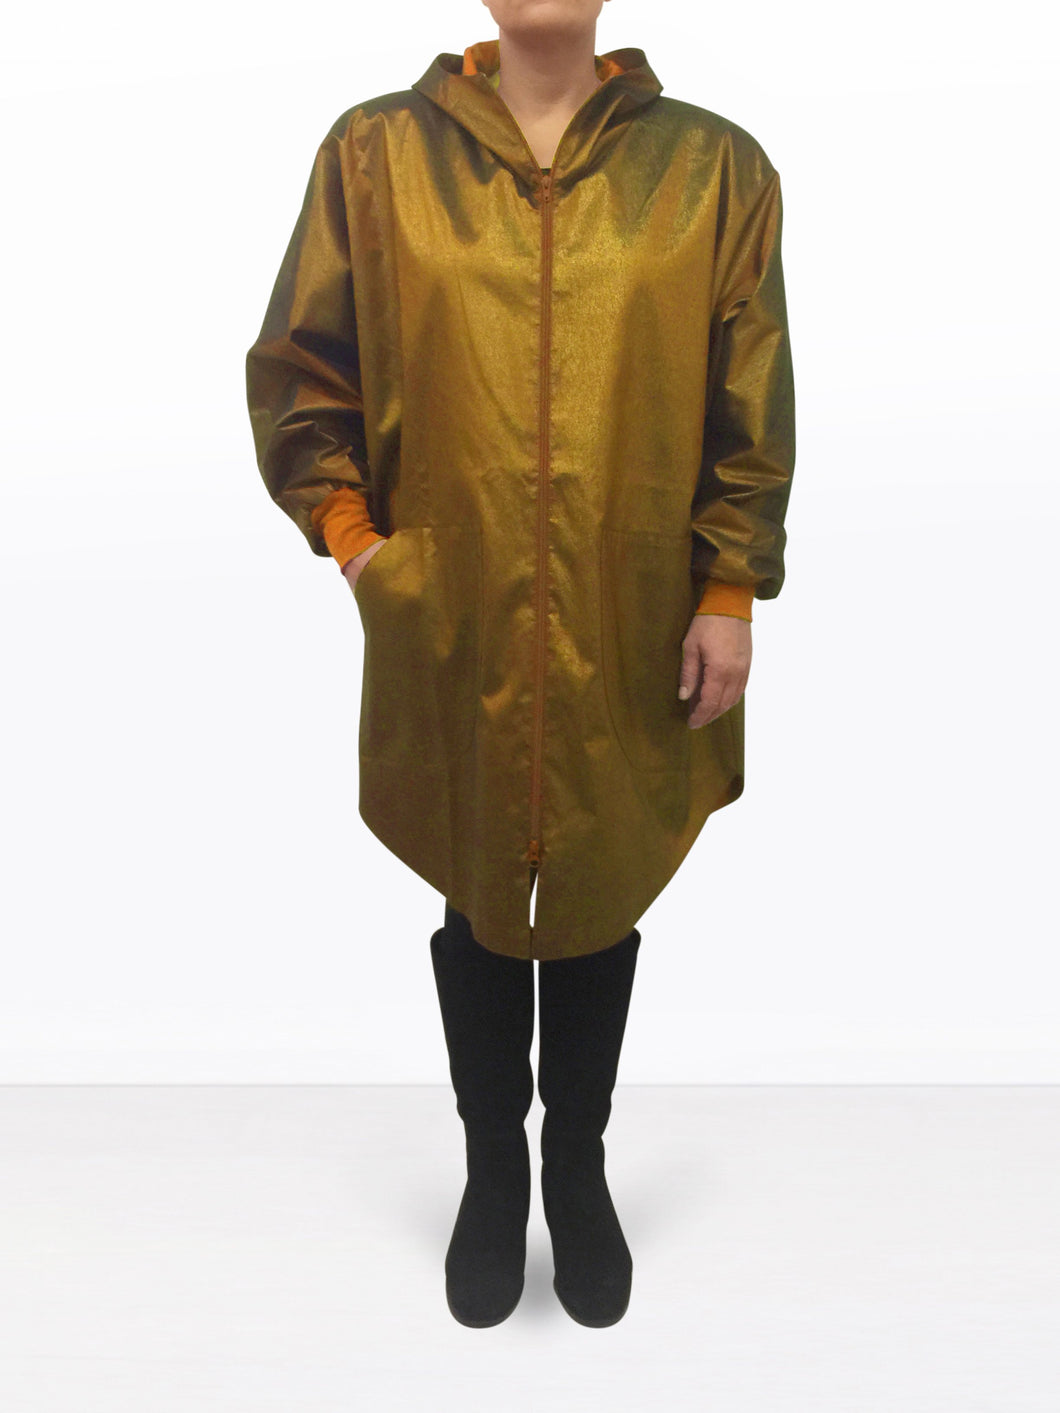 MOON JACKET SHINE GOLD WITH HOOD.